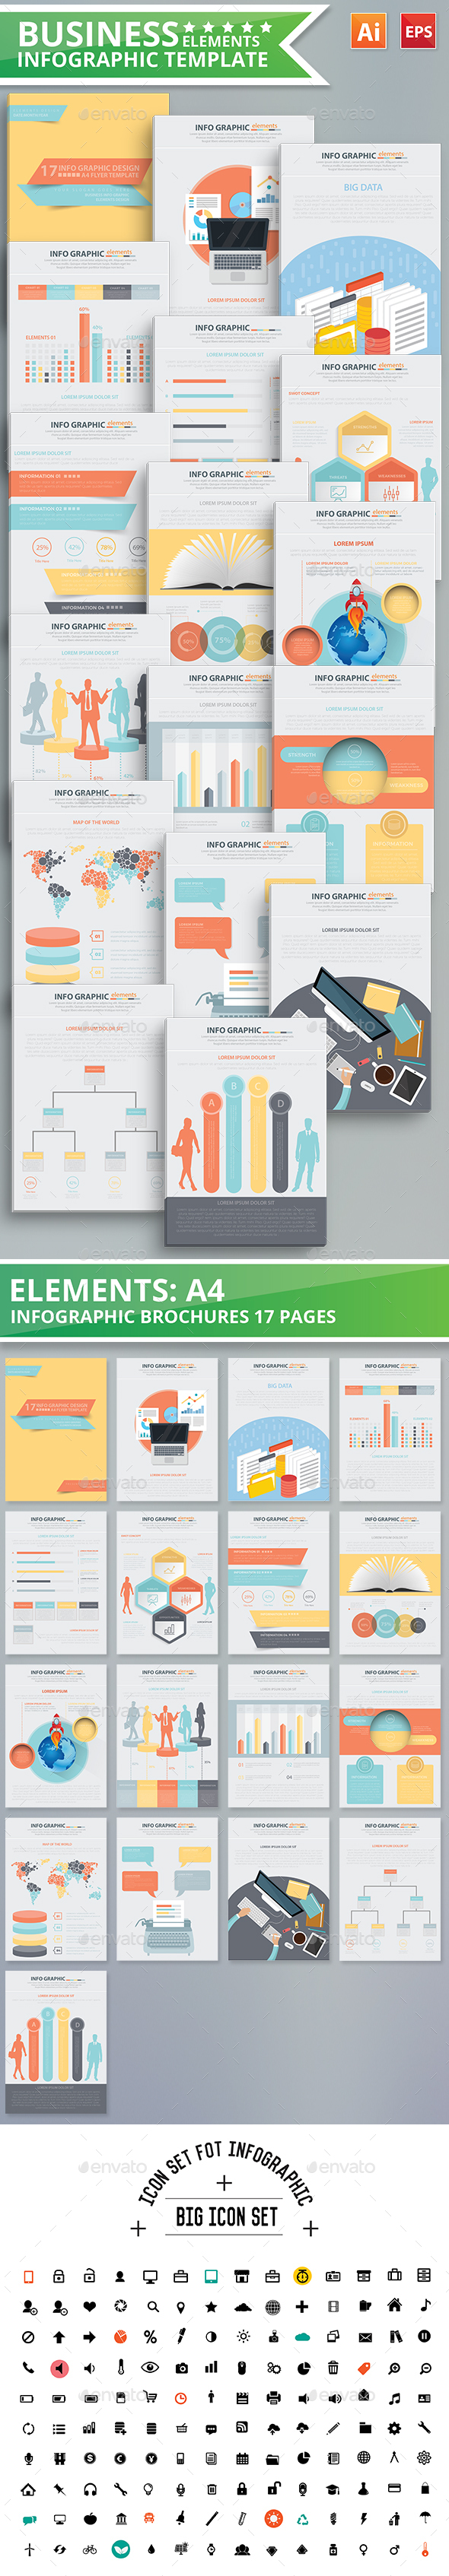 Business Infographic Elements Design - Infographics